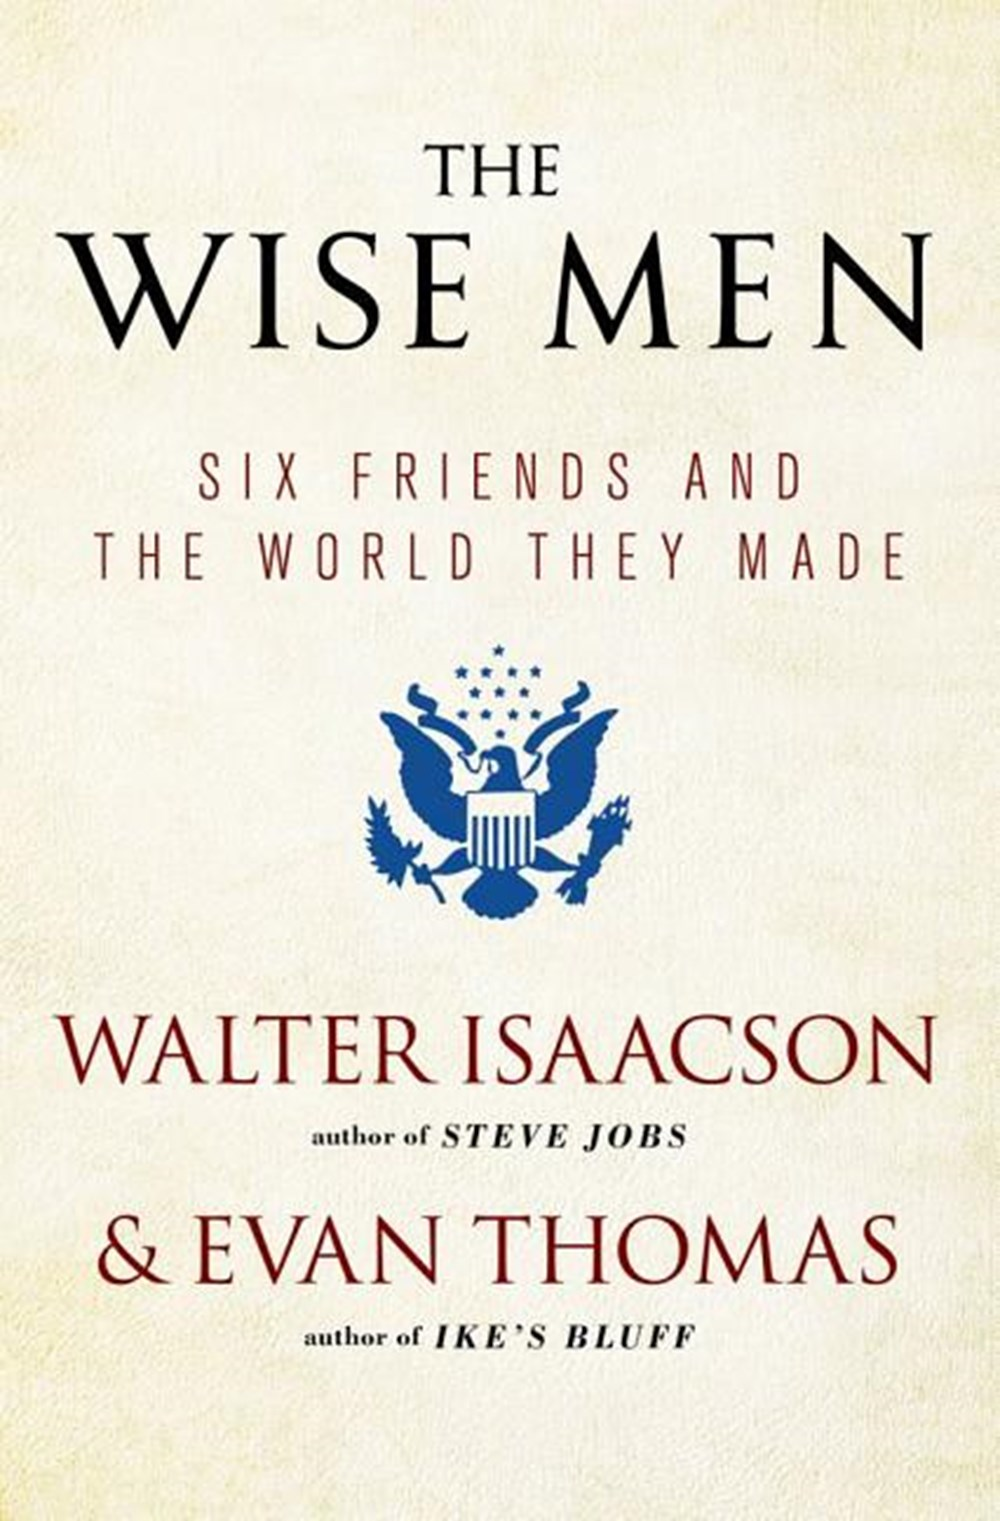 Wise Men Six Friends and the World They Made (Reissue)